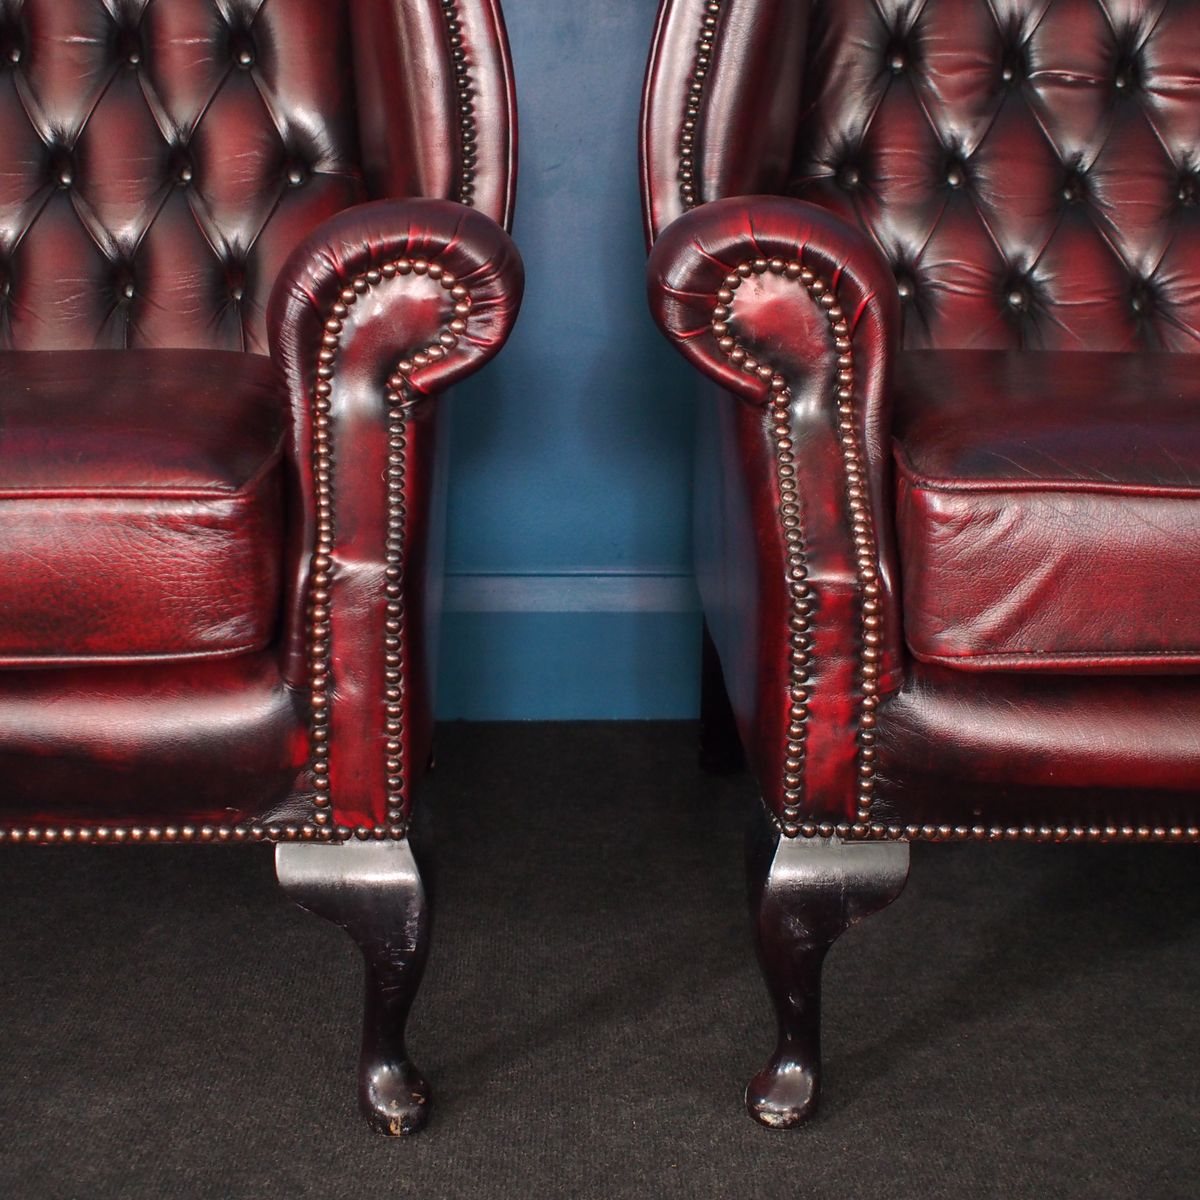 oxblood leather wing chair office under 2000 british vintage wingback chesterfield armchairs in